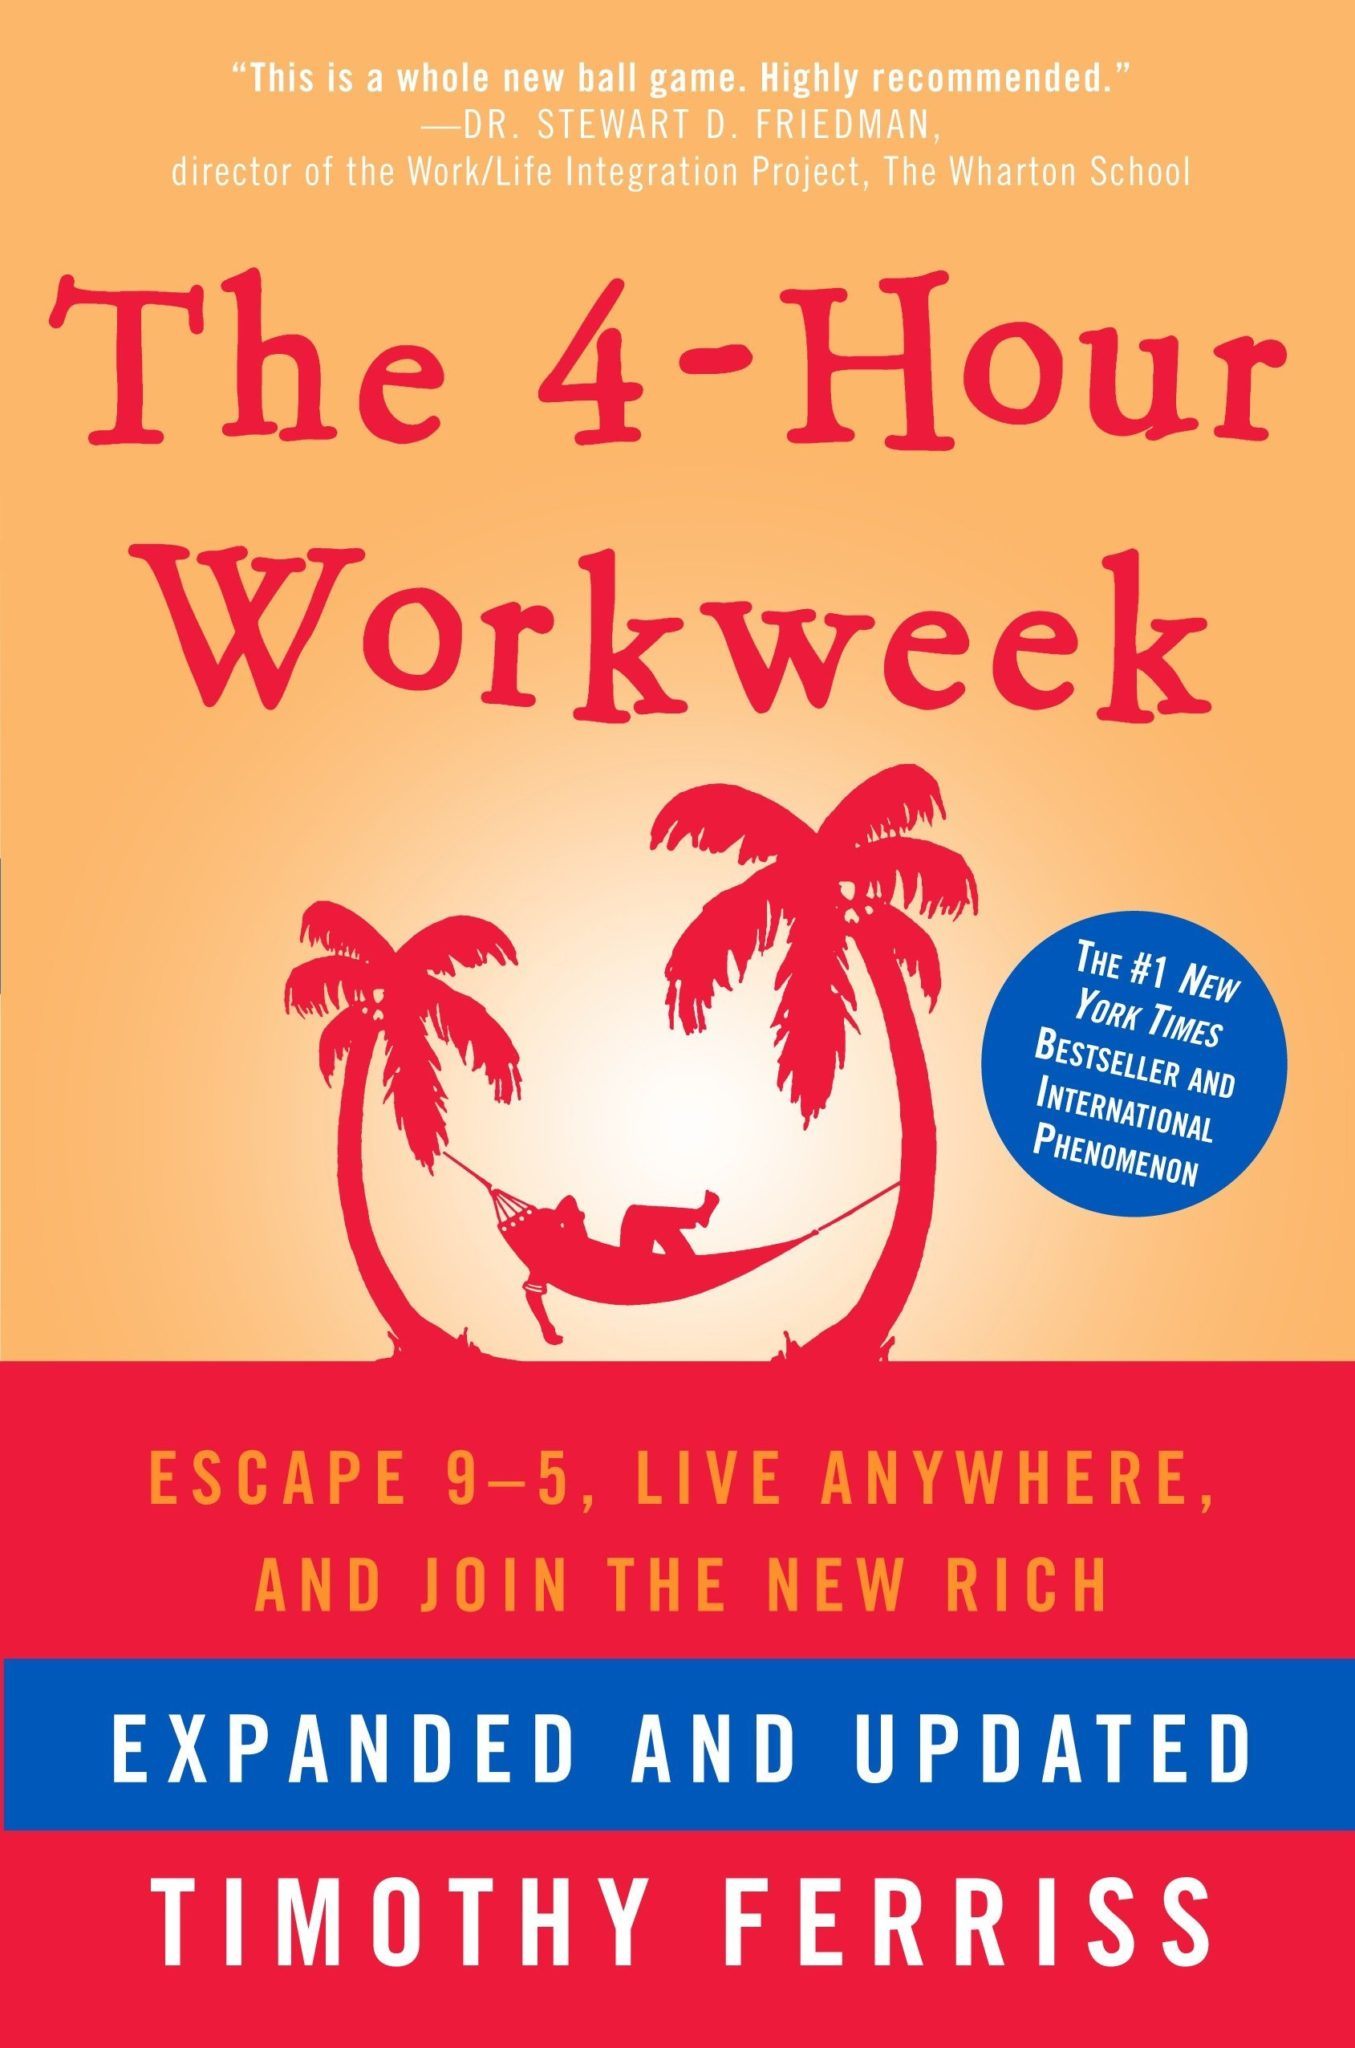 4-Hour Workweek by Tim Ferriss | Book Report by Tricycle Creative